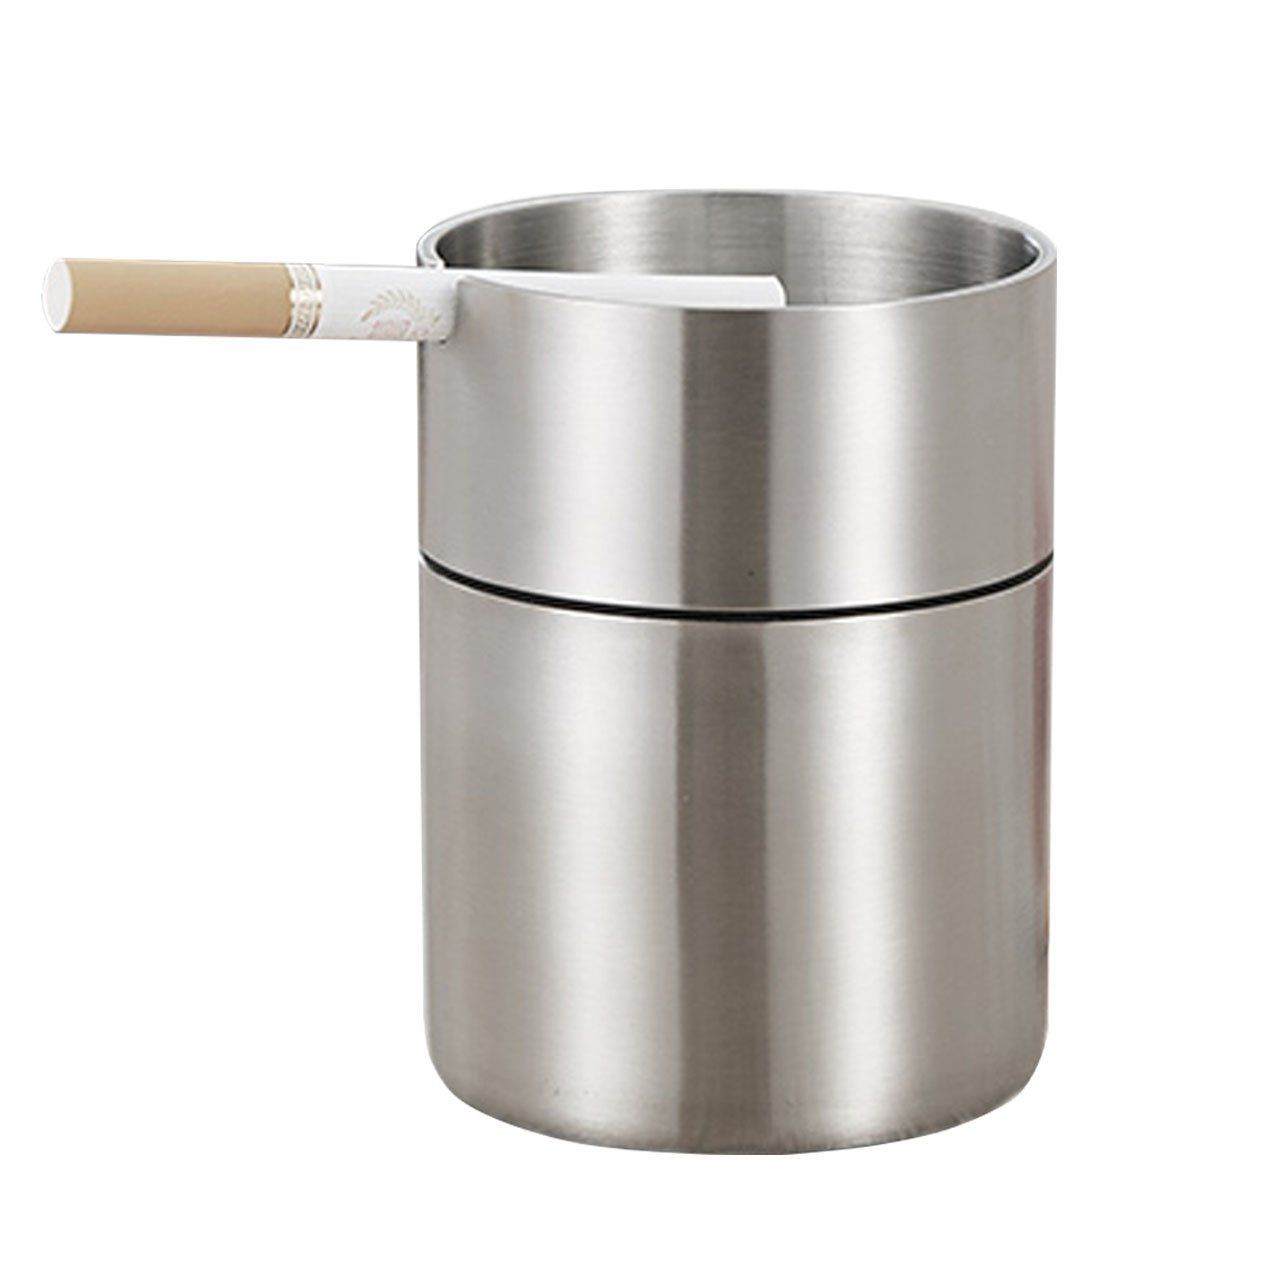 Oilp Smokeless Car Ashtray for Cigarette/ Home Ashtray Office ...